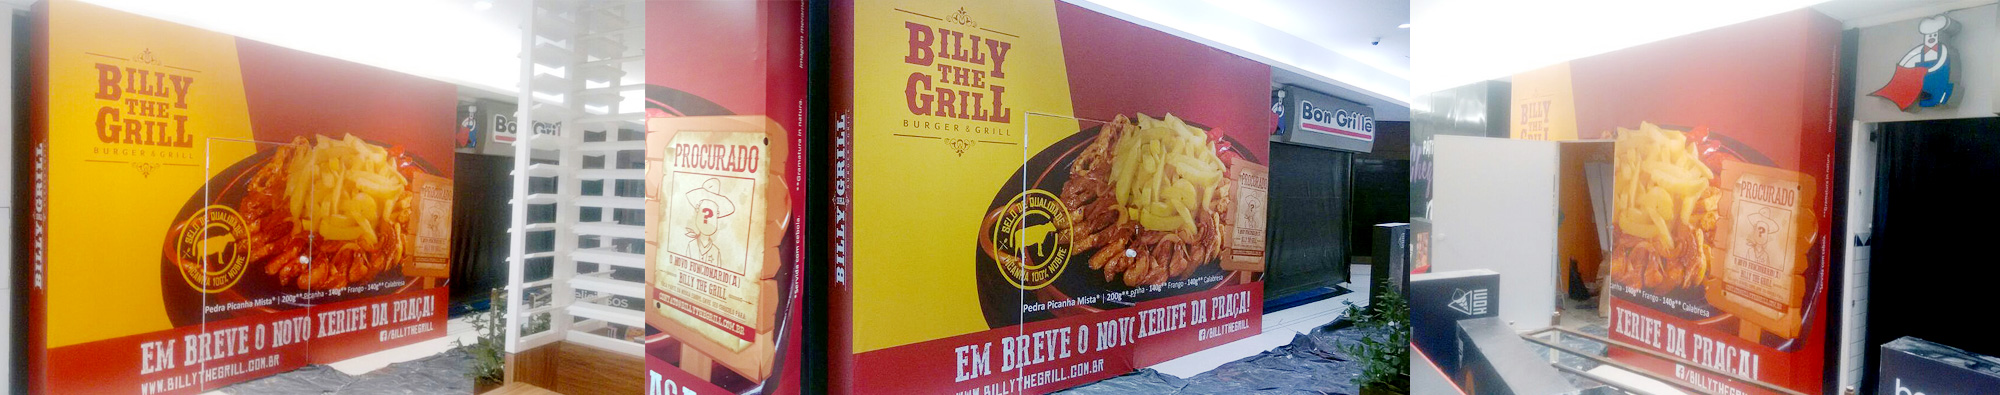 Tapume Billy The Grill